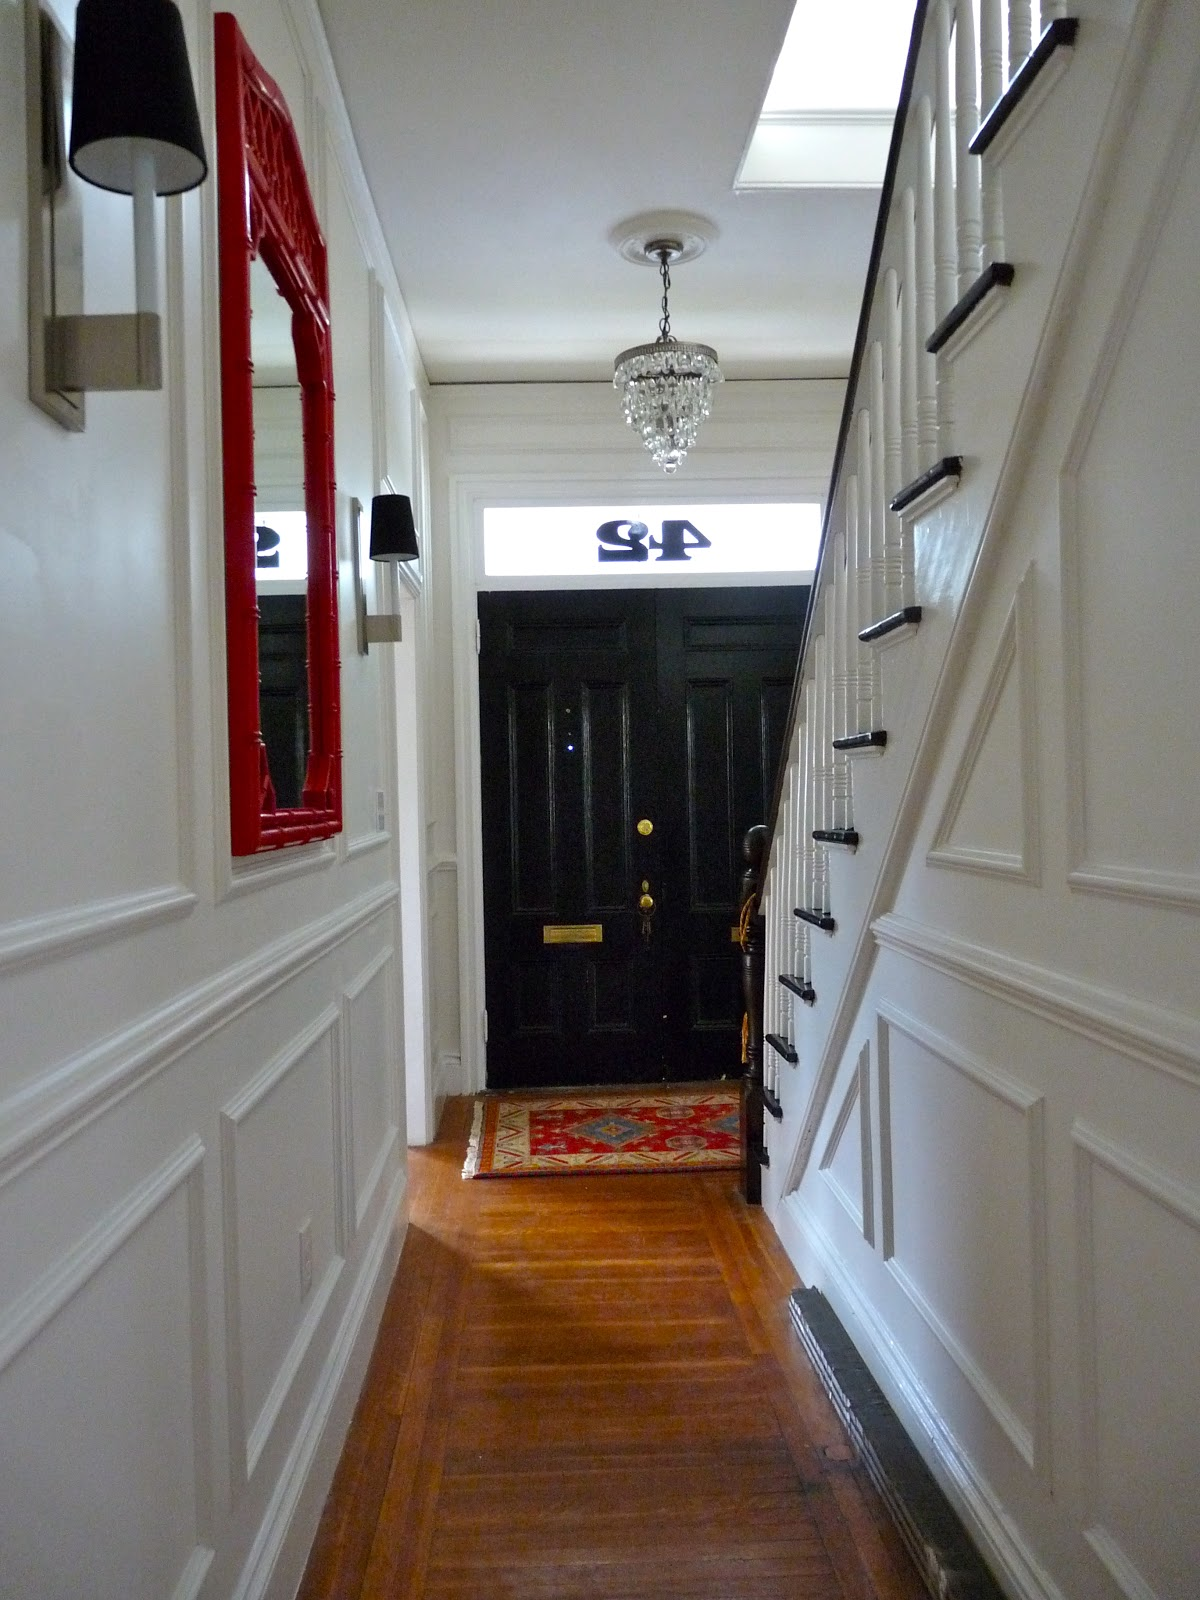 Foyer Hallway Schedule : Hazardous design a grand entrance foyer and hallway reveal